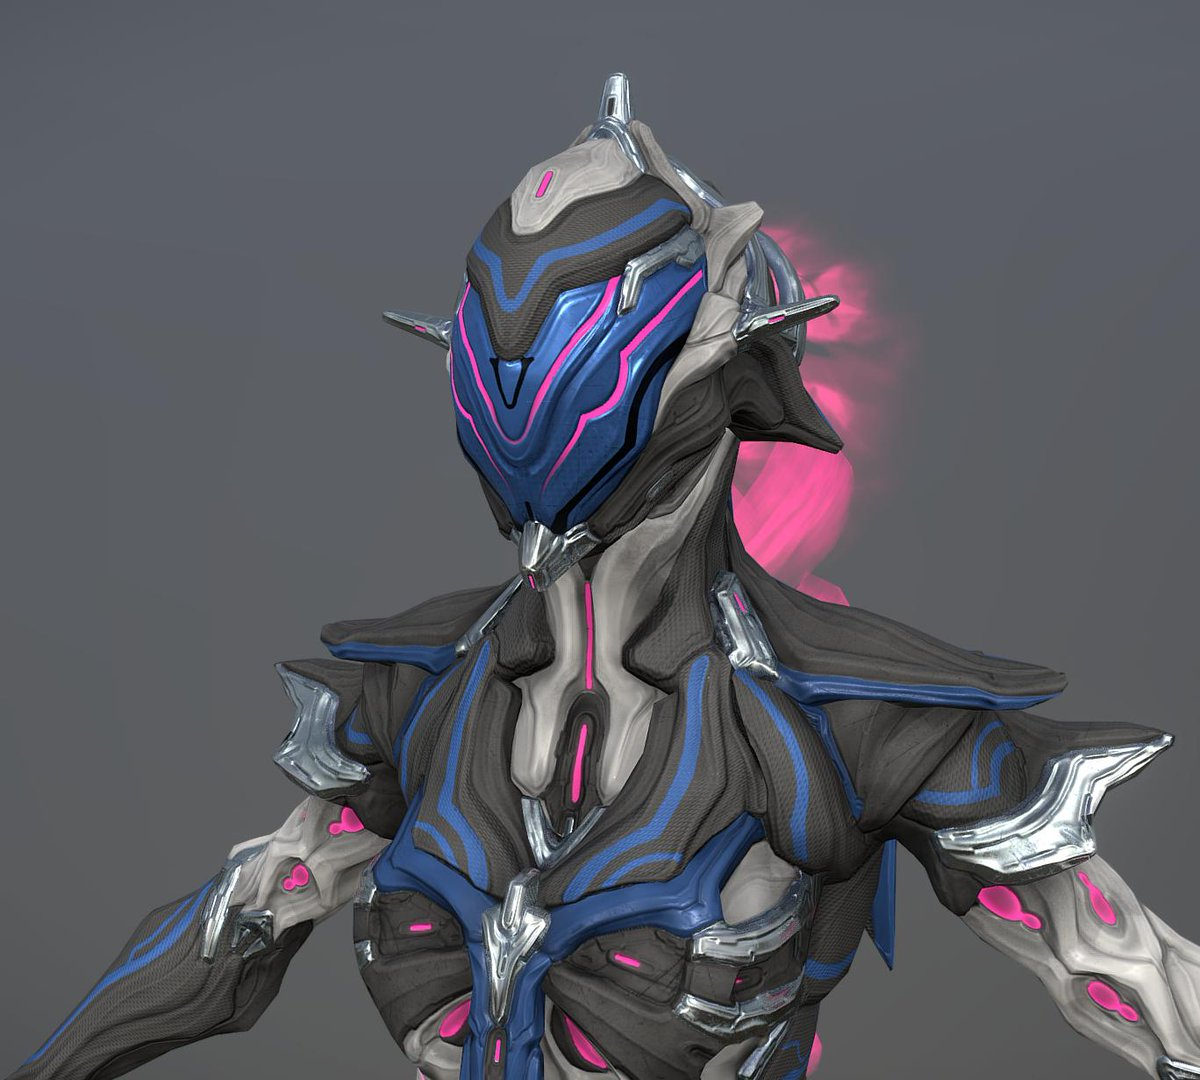 Wisp Diva is done. As Baruuk, I will post her on the workshop once the whole set is done (warframe + syandana + weapon). But I still share some pics and the model on sketchfab :  https:// skfb.ly/6LsAR      #warframe #tennogen<br>http://pic.twitter.com/WJUCB8UIIX